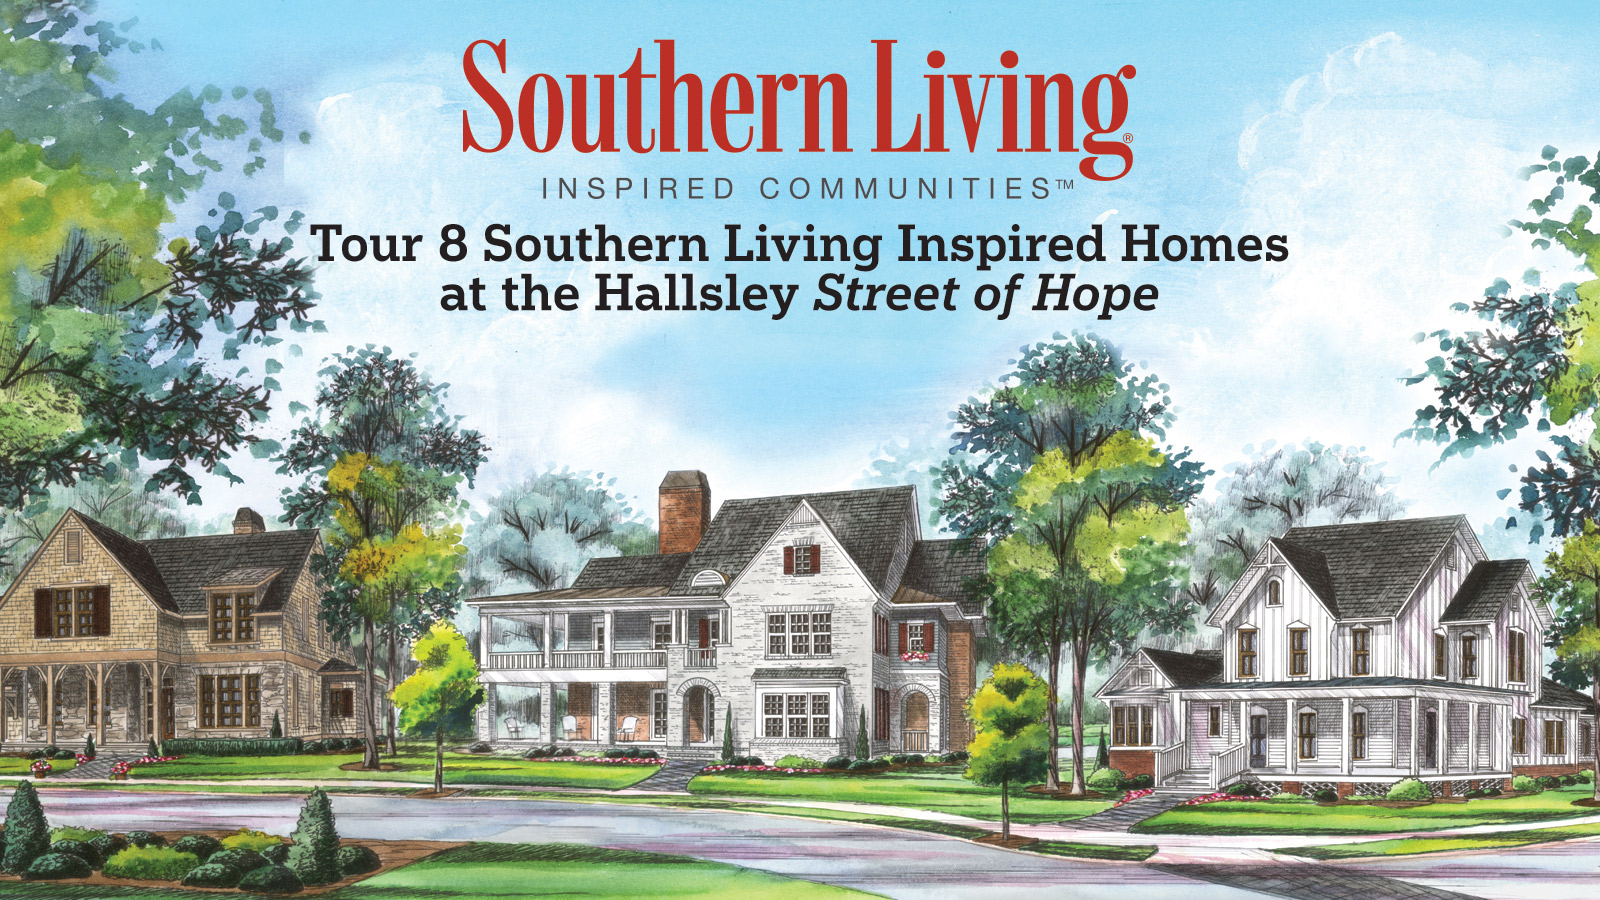 Southern Living House Plans   Find Floor Plans, Home Designs, and ...